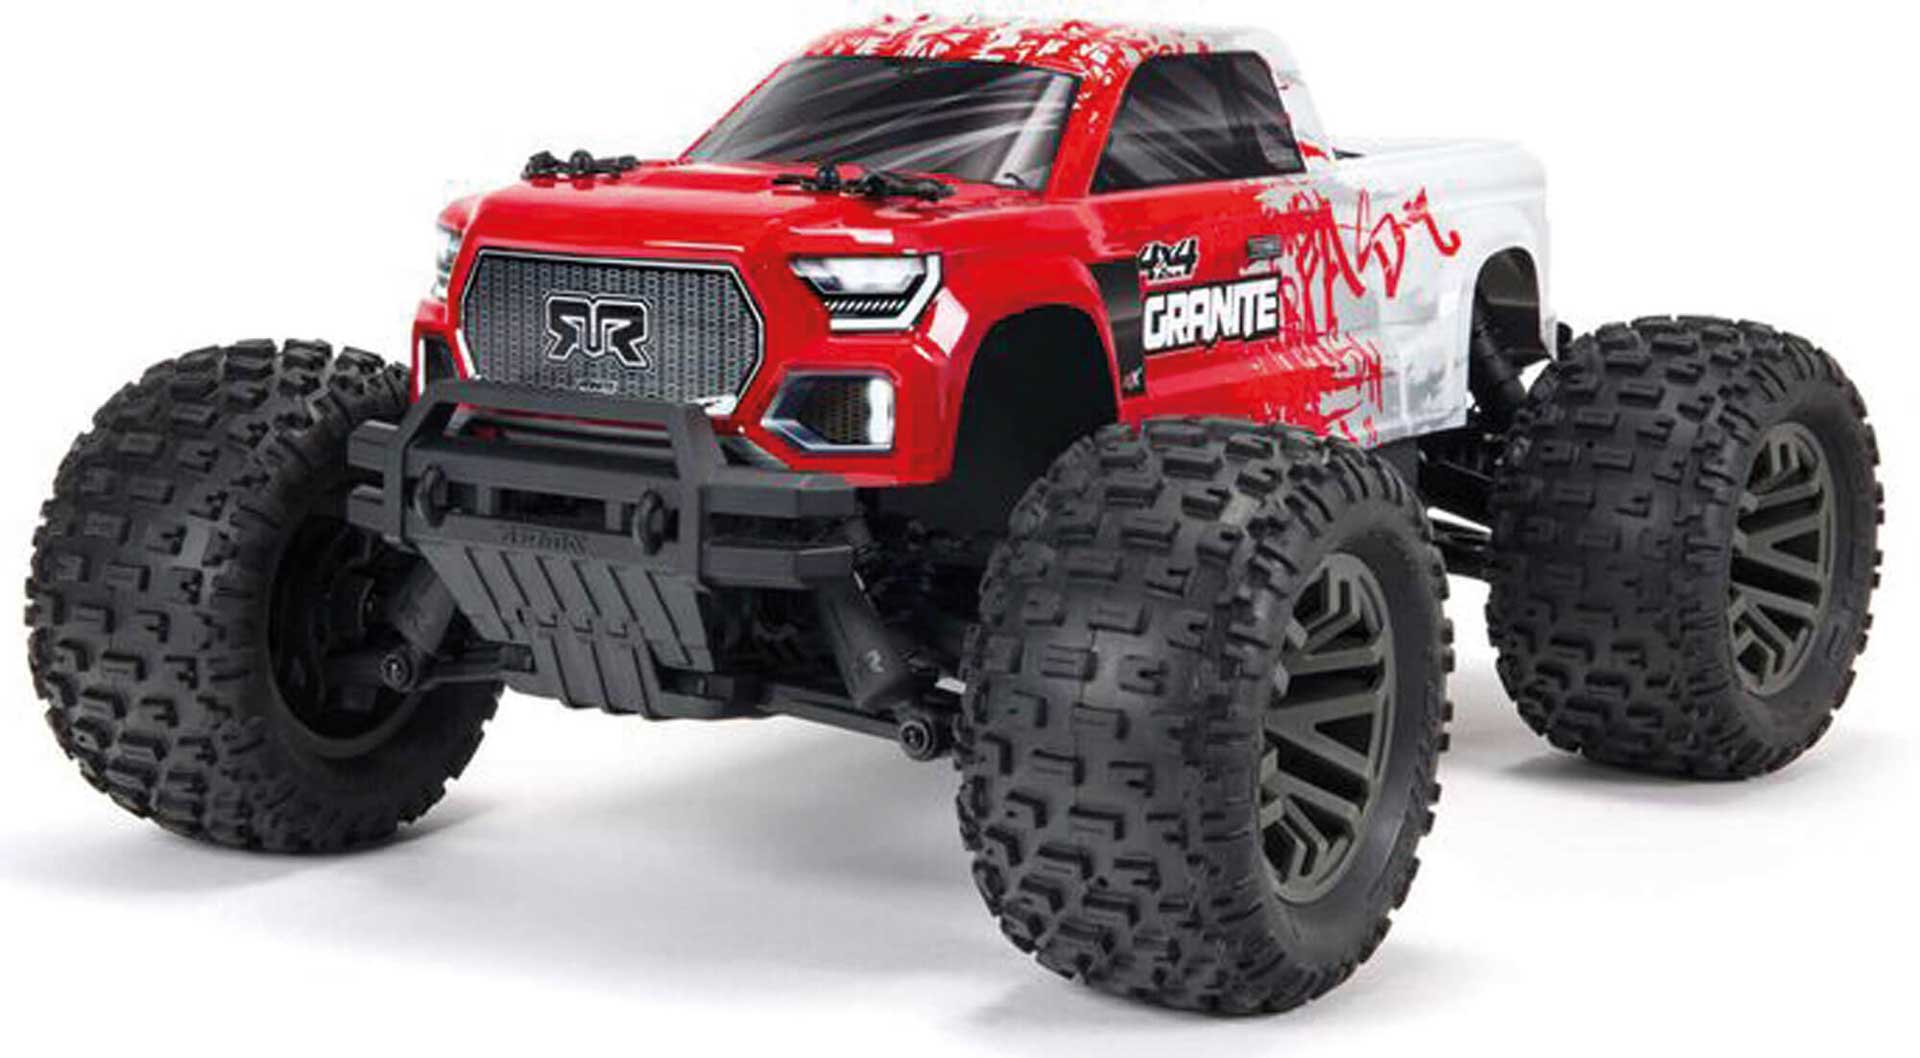 ARRMA GRANITE 4X4 3S BLX Brushless 1/10th 4wd MT Color2